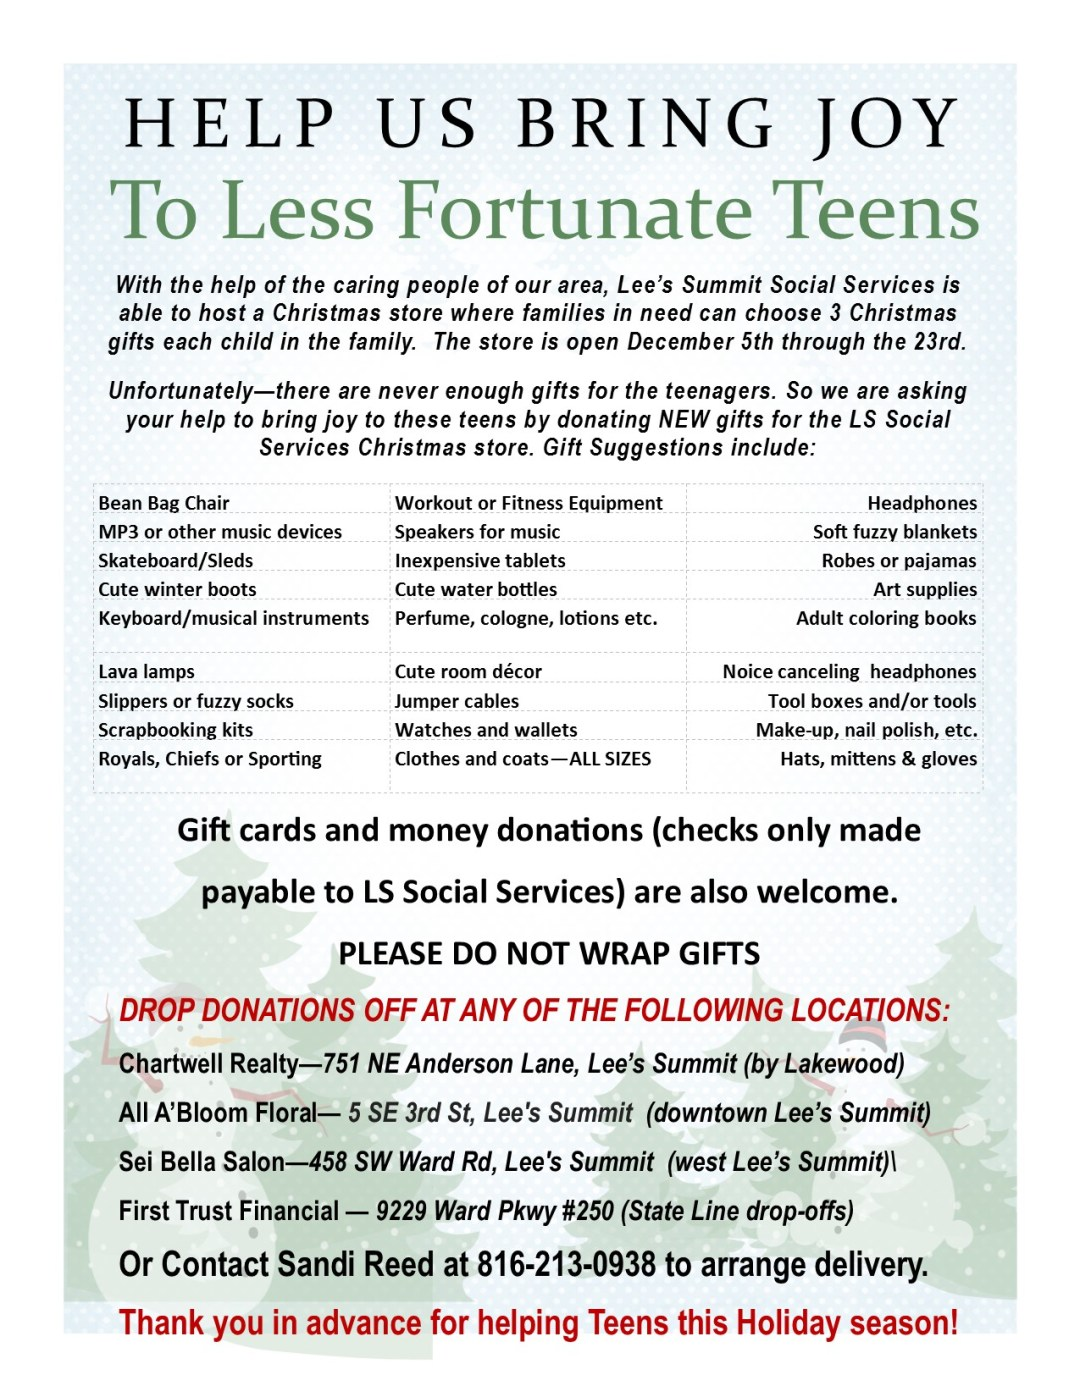 gift cards and money donations checks only made payable to ls social services are also welcome please do not wrap gifts